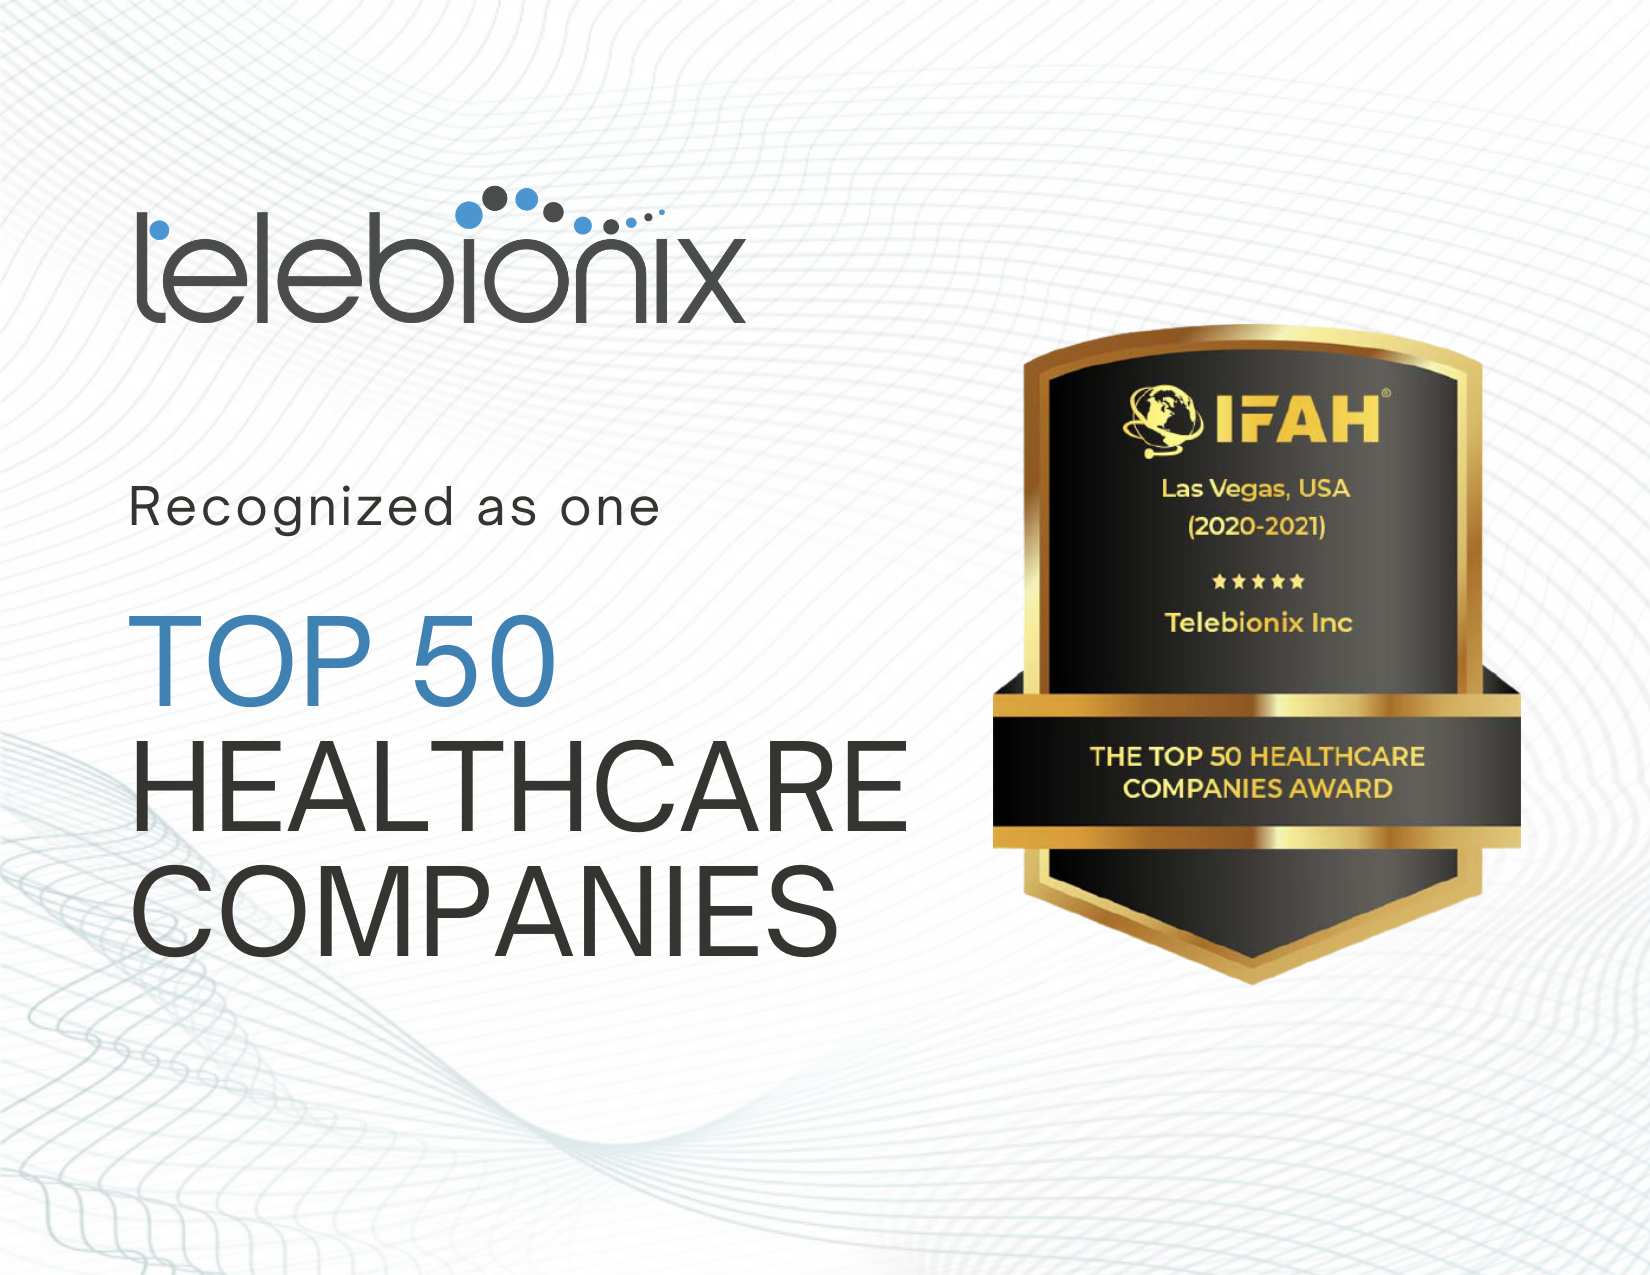 Telebionix Recognize in Top 50 Healthcare Companies by IFAH